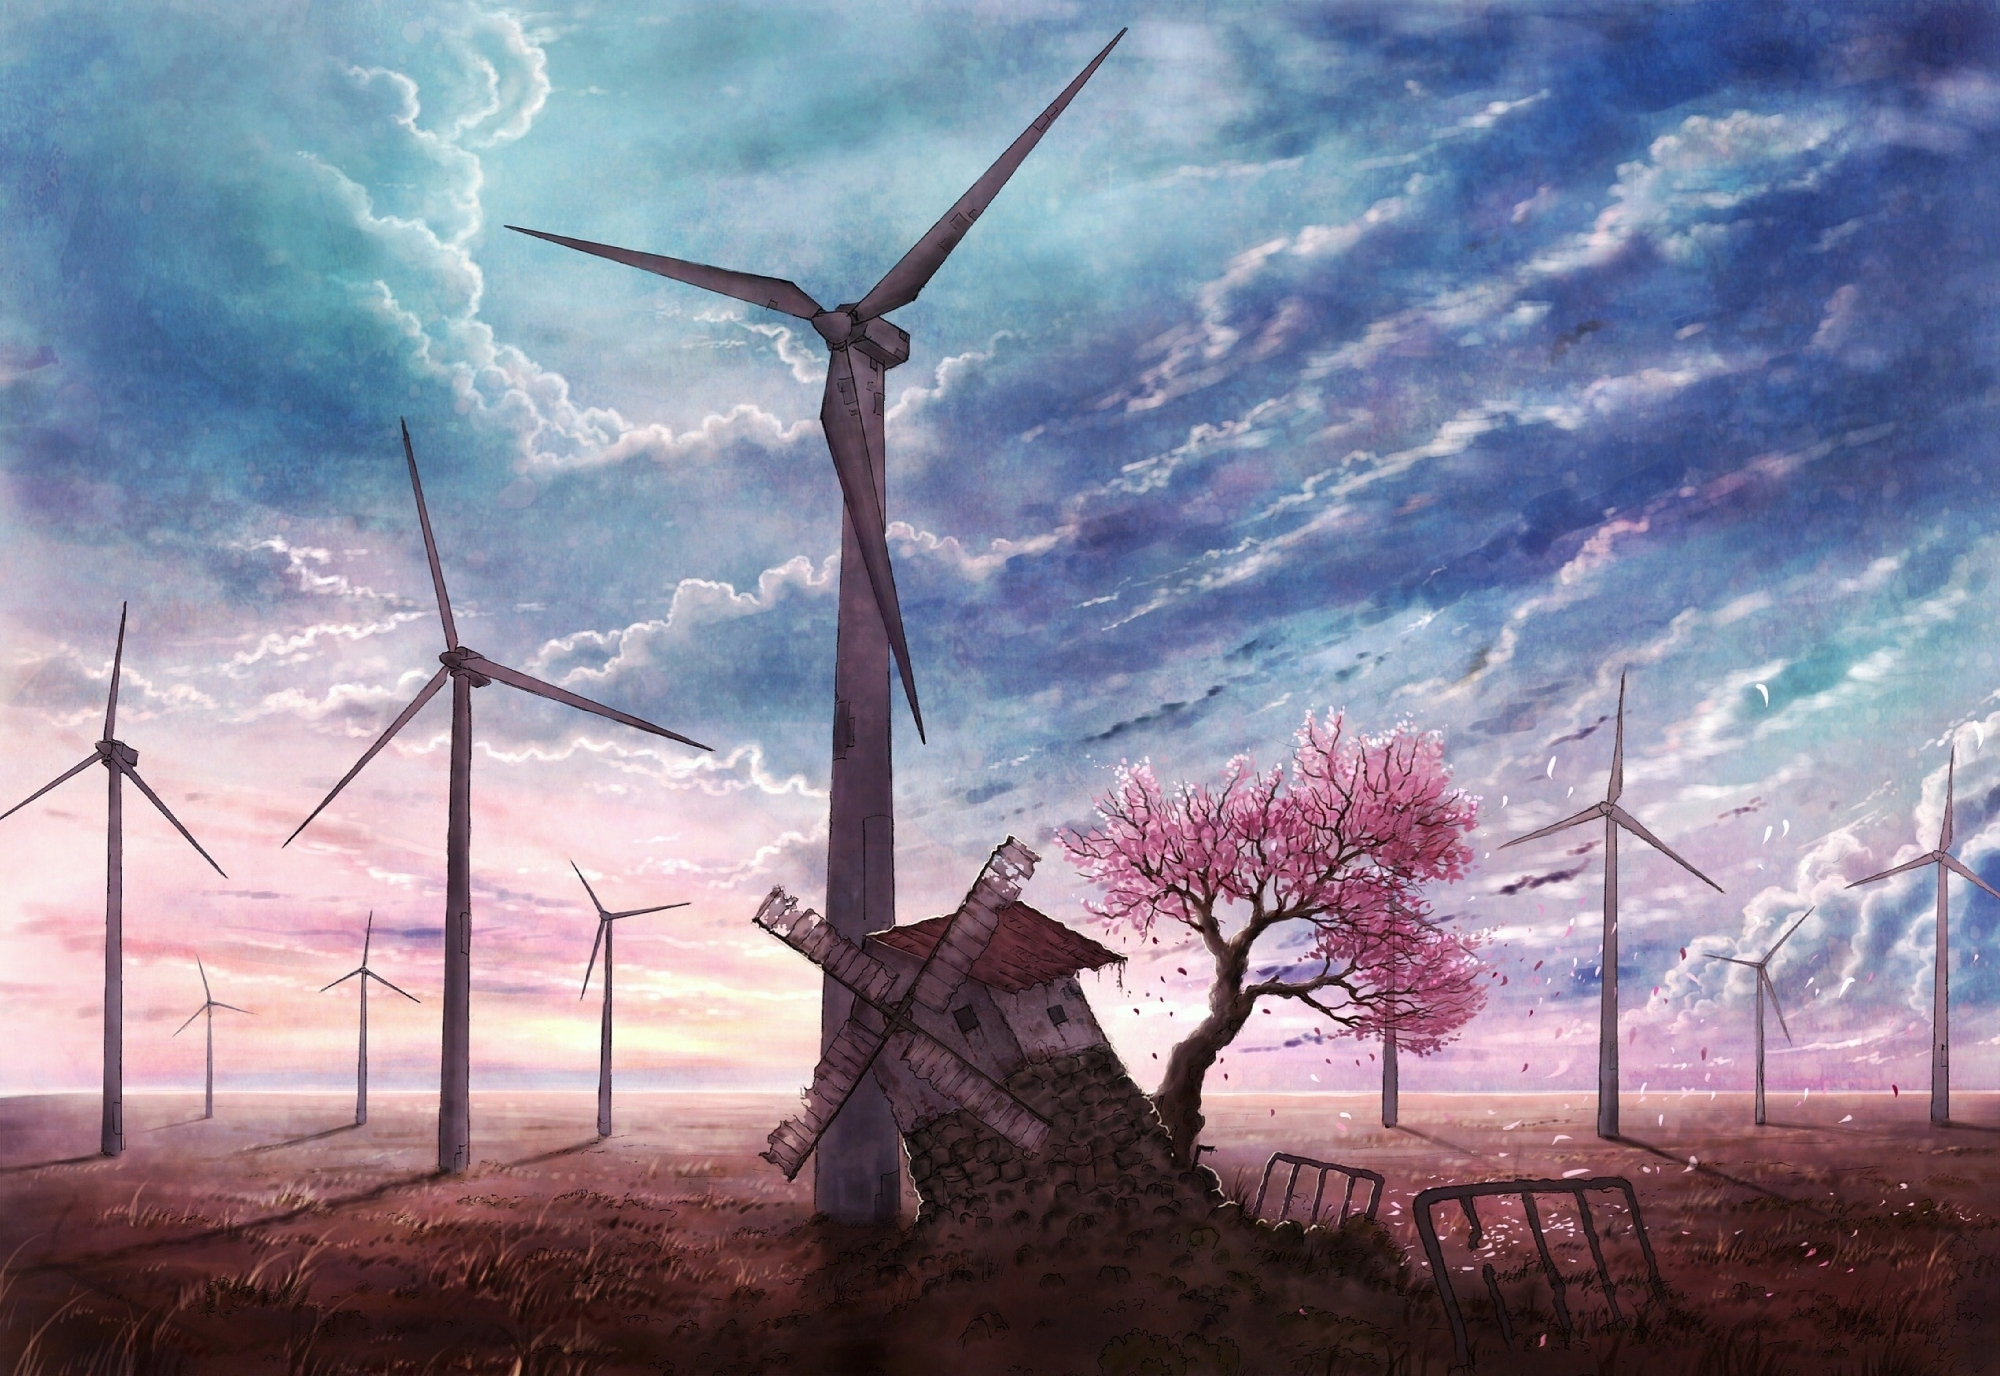 Image: Art, wind, mills, turbines, wind station, sky, field, tree, Sakura